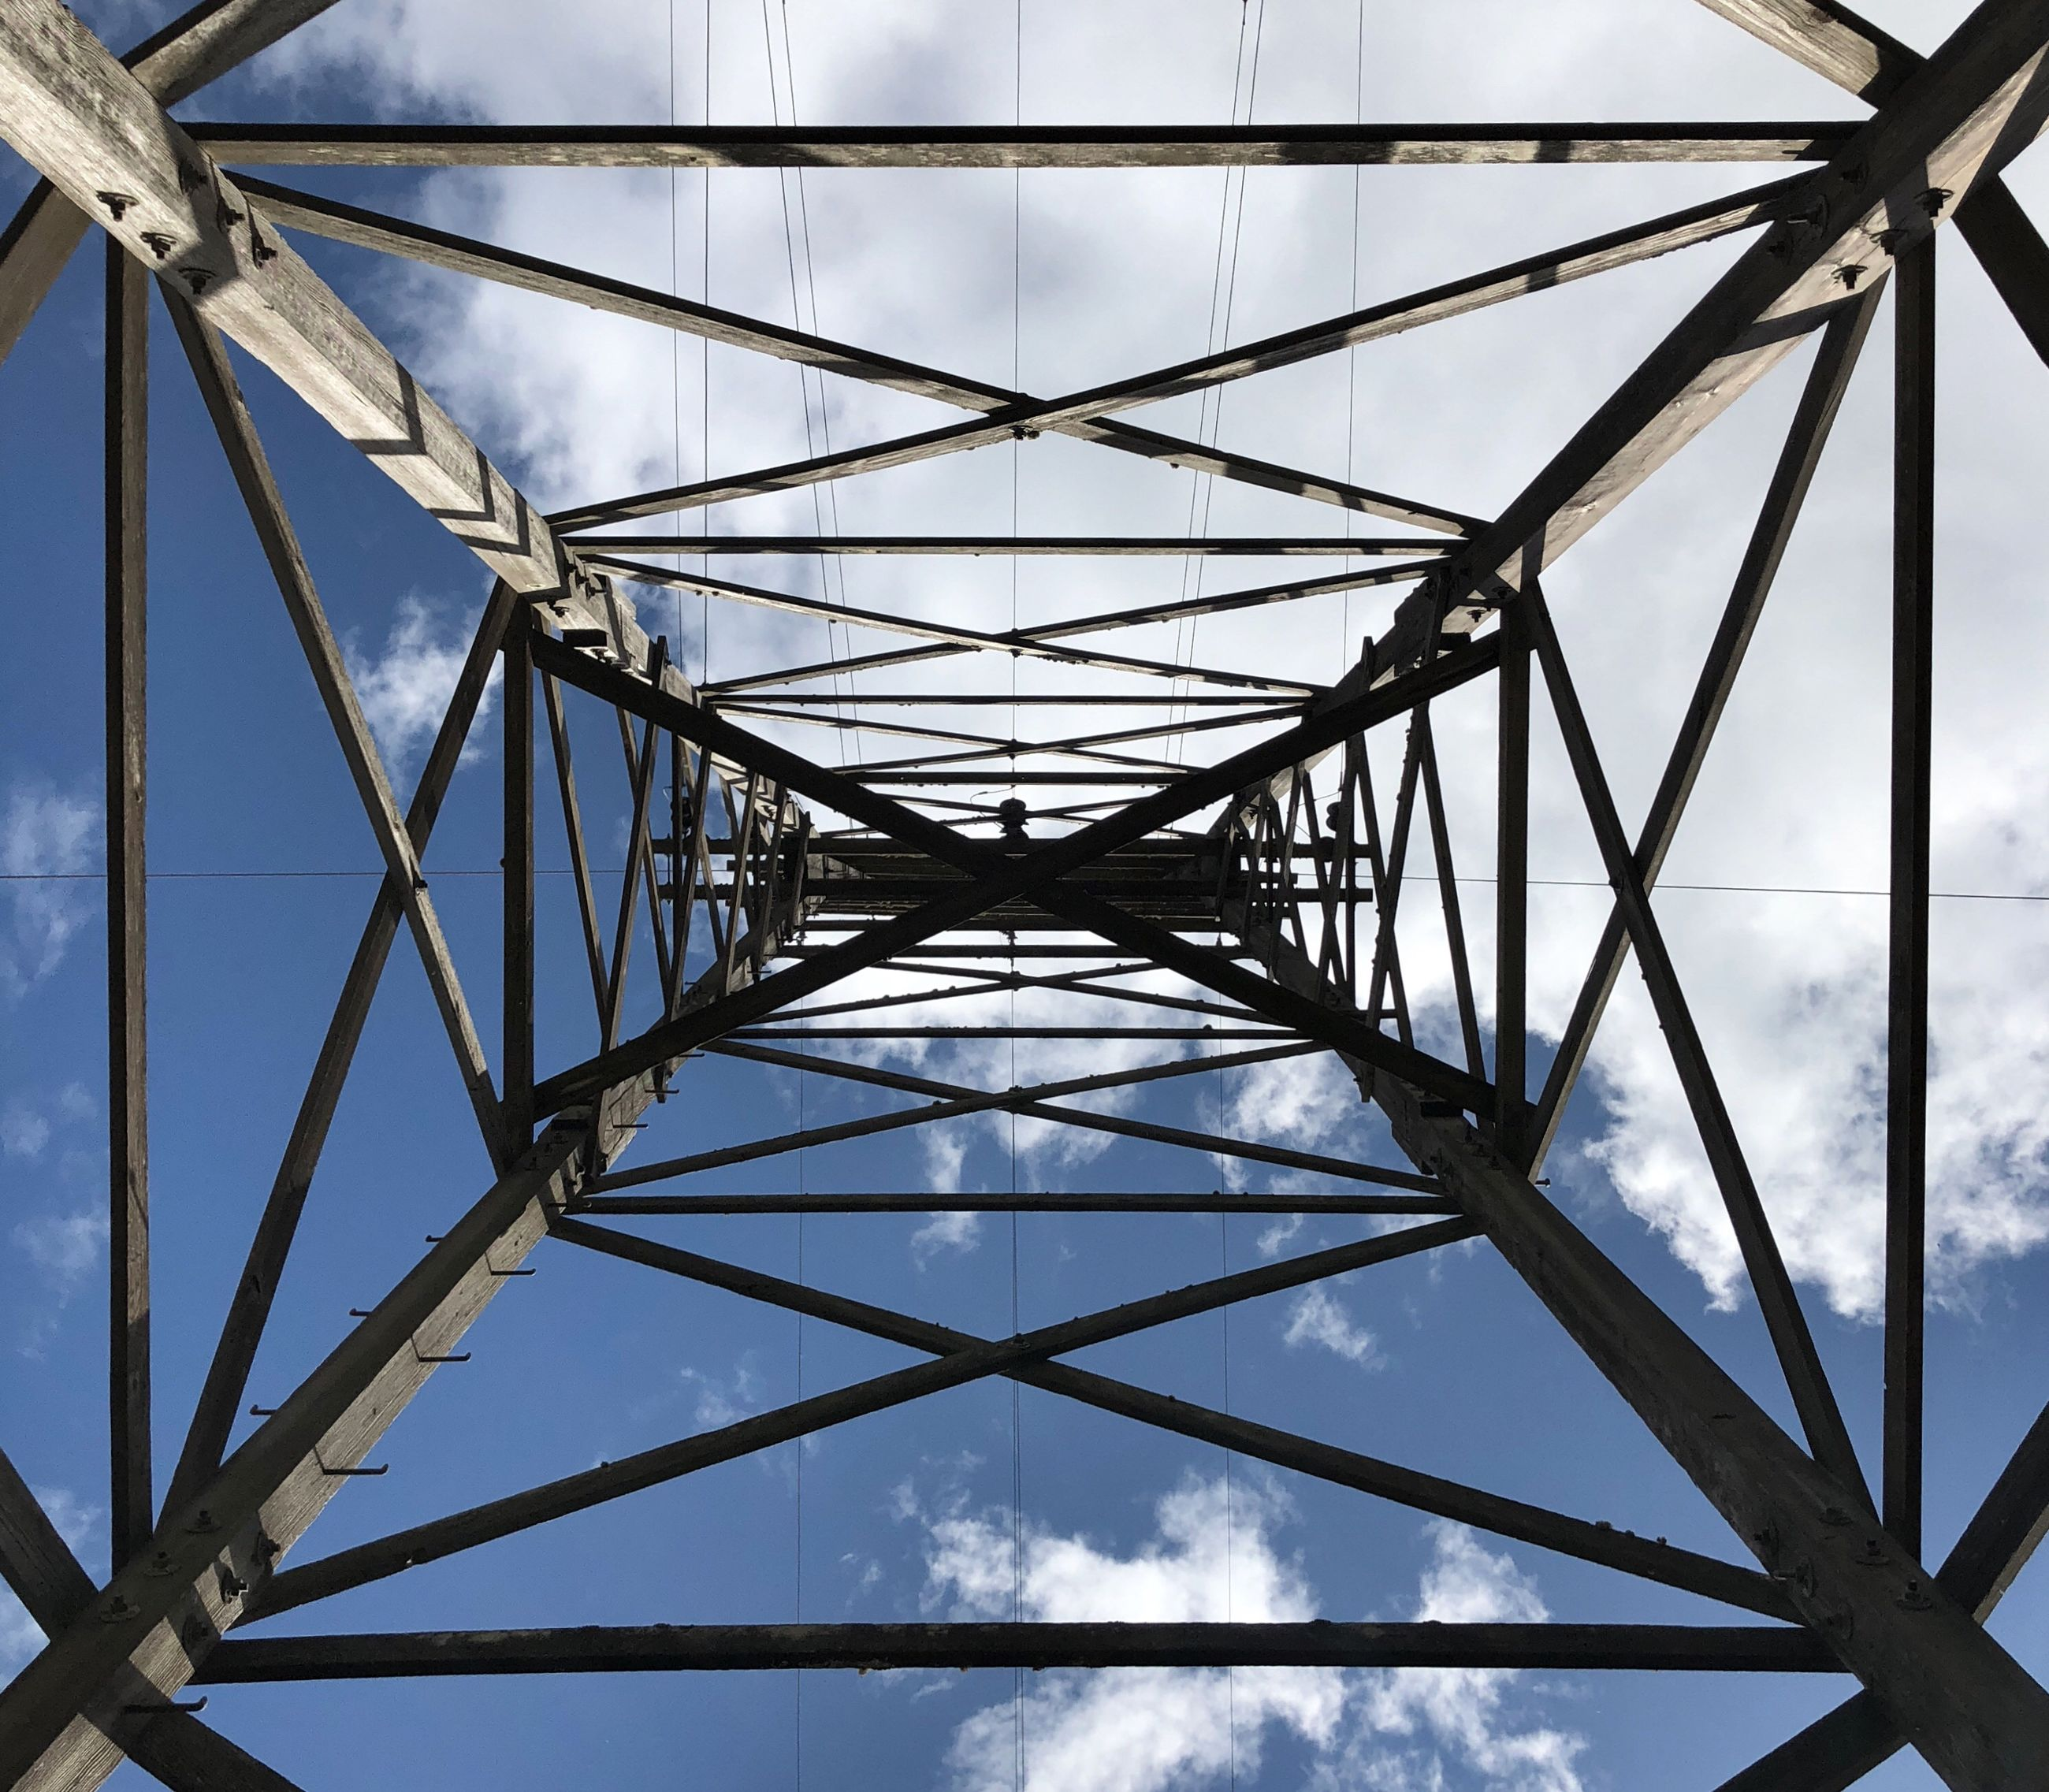 sky, metal, built structure, connection, electricity pylon, low angle view, no people, cable, architecture, nature, directly below, day, electricity, pattern, power line, power supply, fuel and power generation, technology, outdoors, sunlight, complexity, girder, steel, alloy